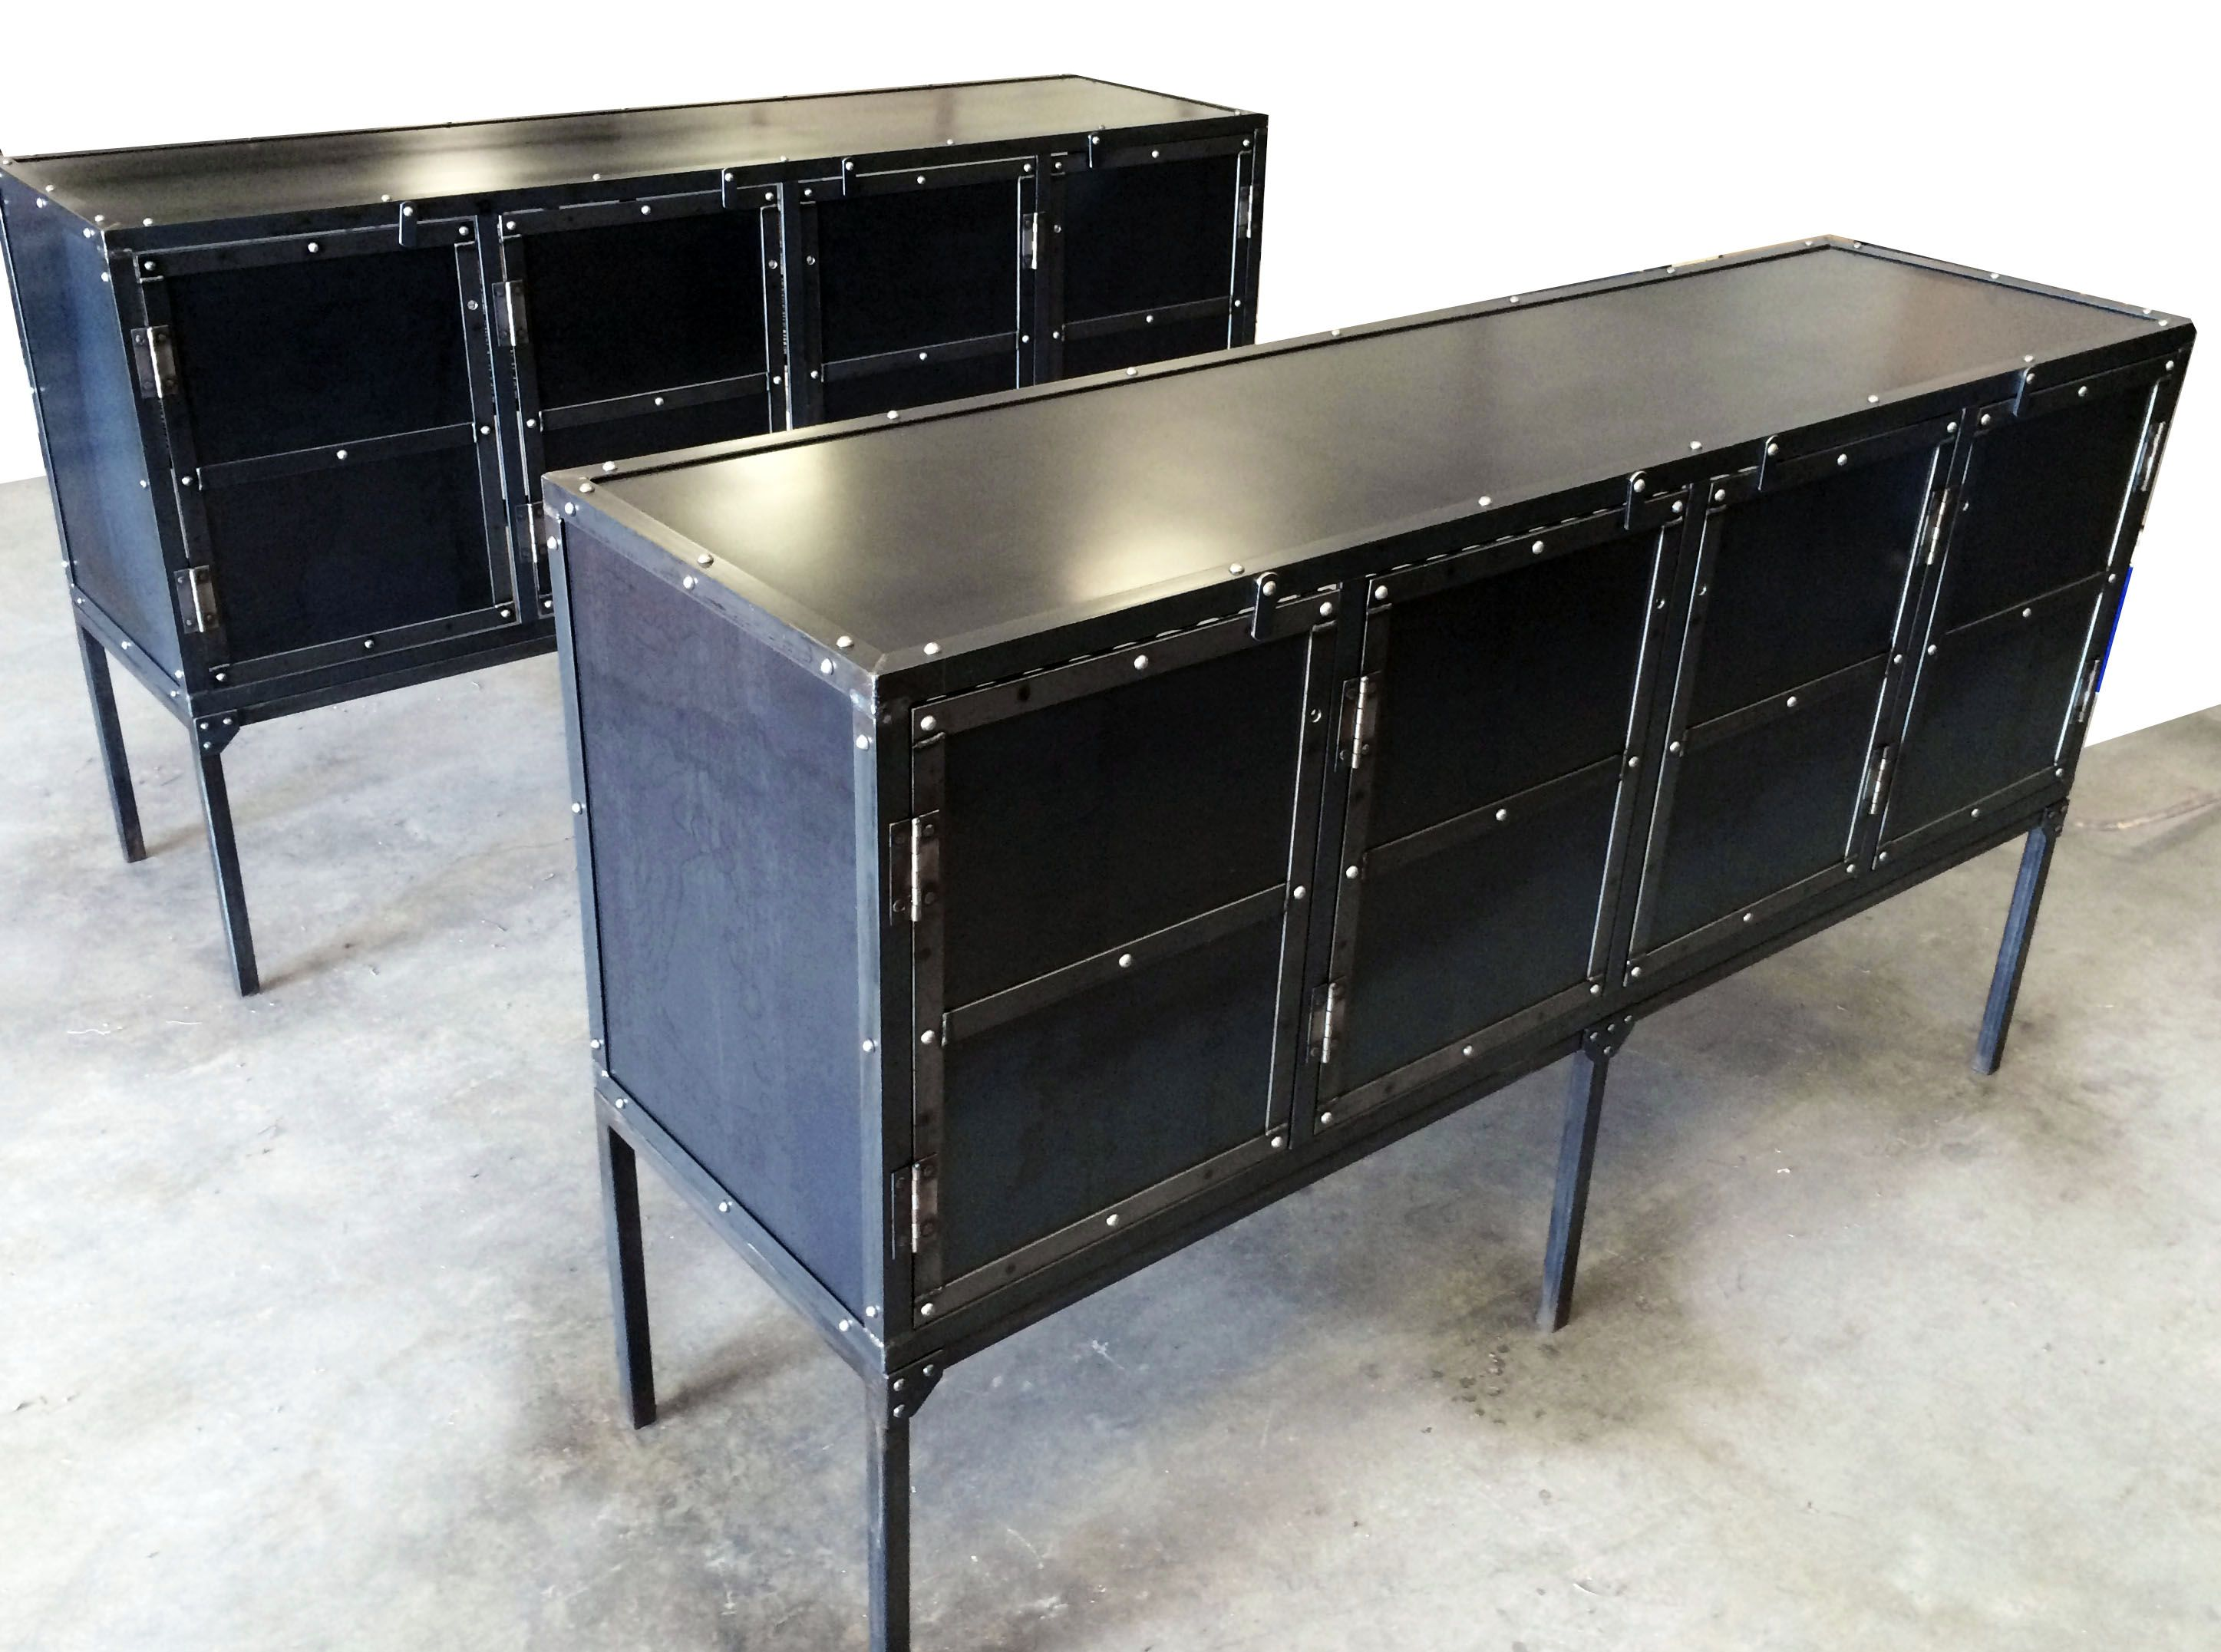 sturdy storage chests shelves ideas door metal locking and tubular cabinet system steel cabinets garage material body durable frame